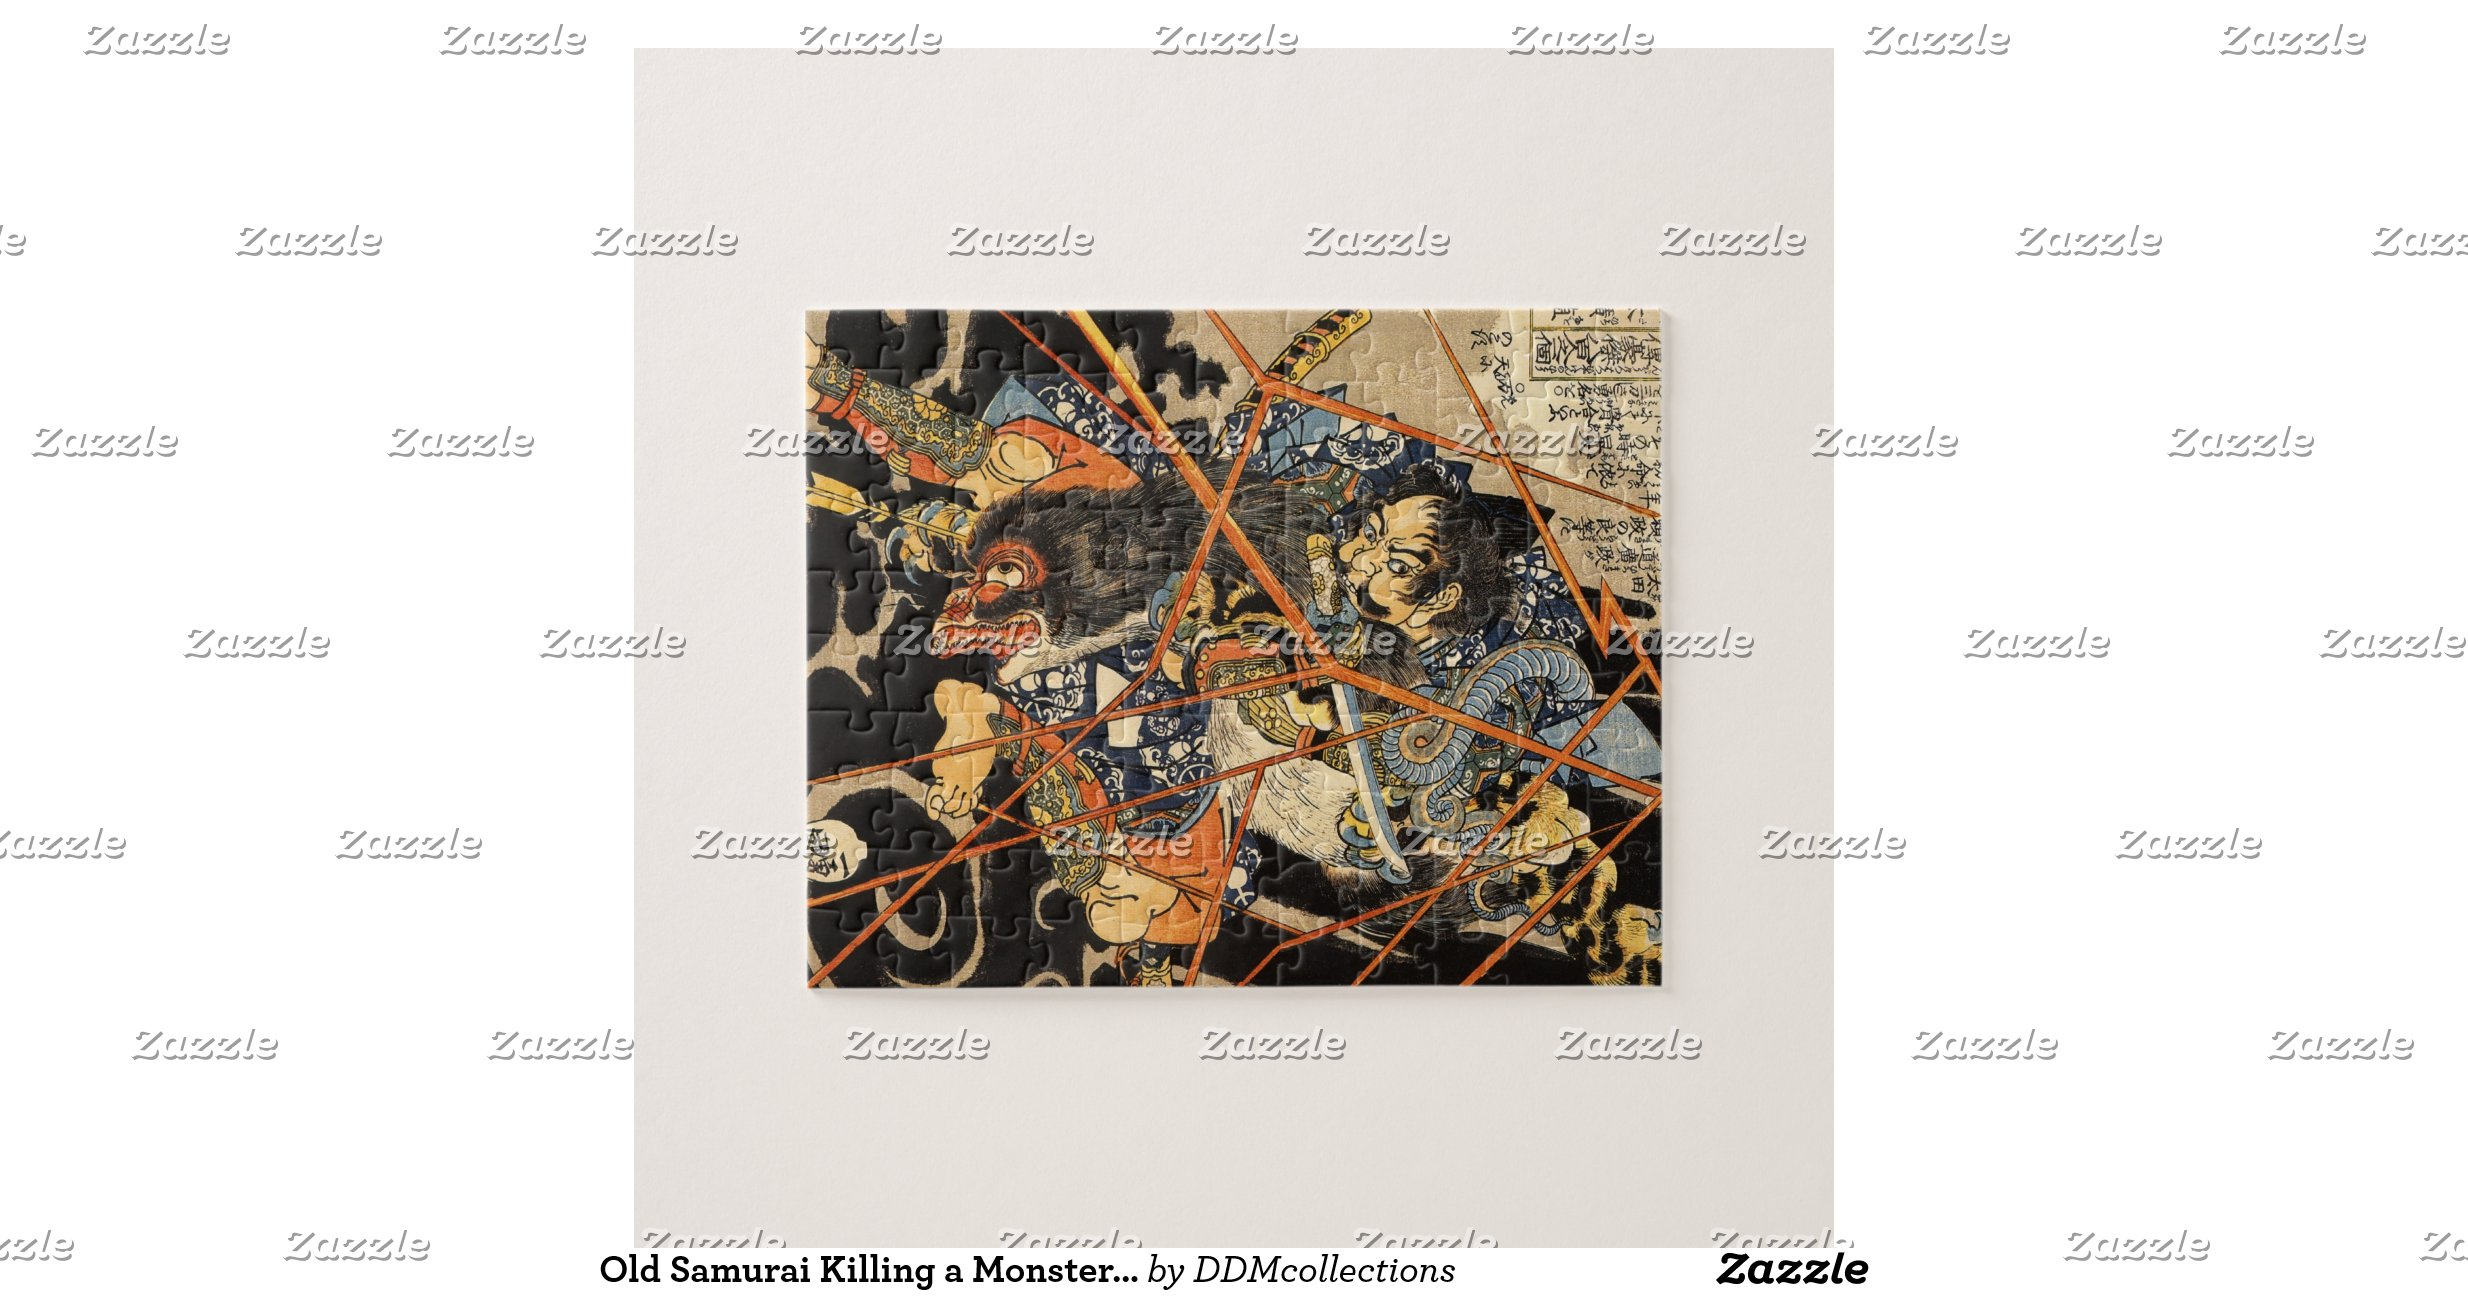 old samurai killing a monster painting puzzles    Old Samurai Painting